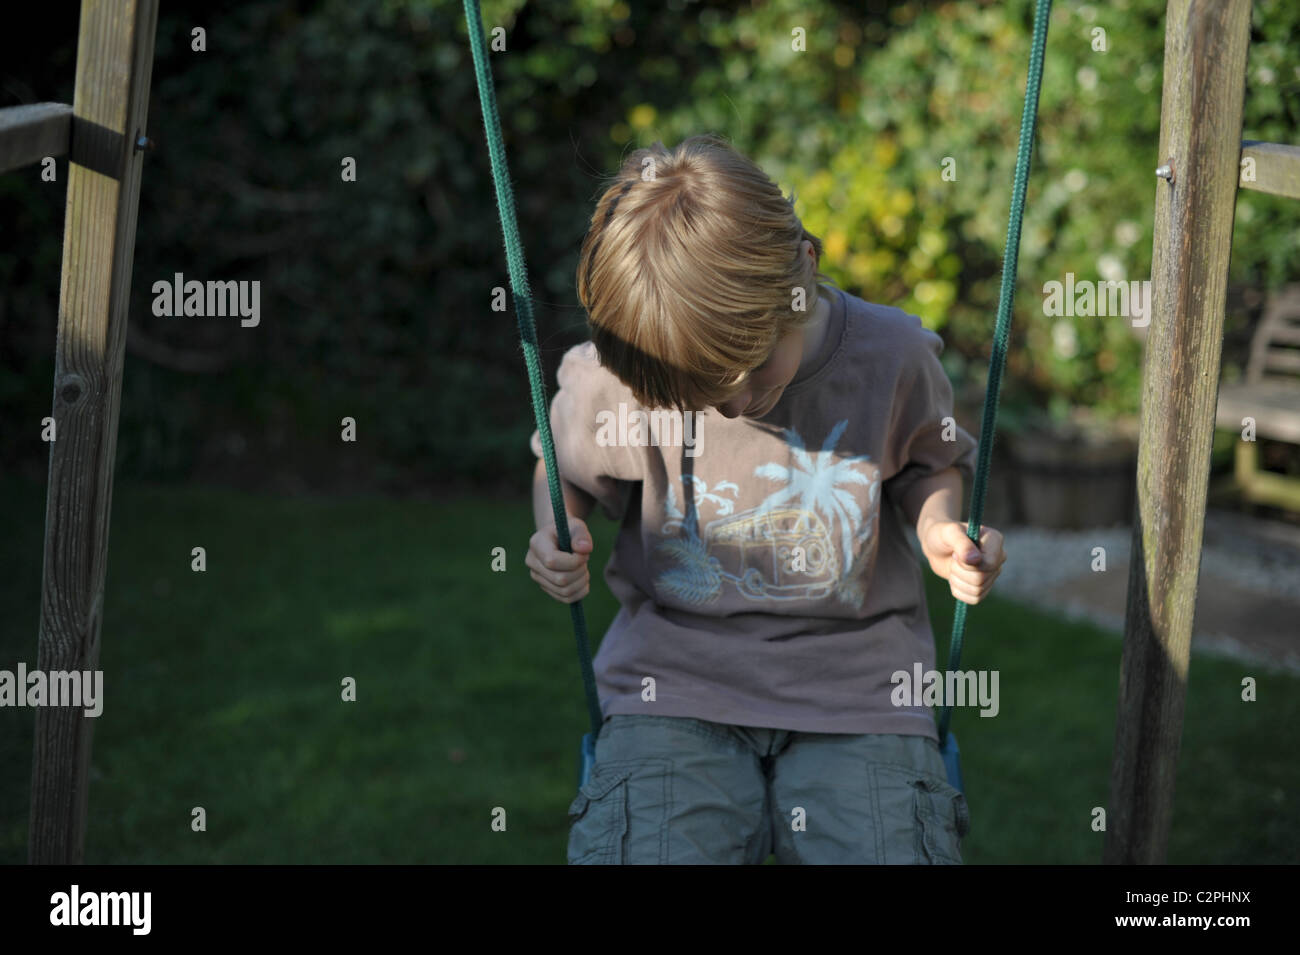 A young fair haired boy sitting on a garden swing with his head down looking